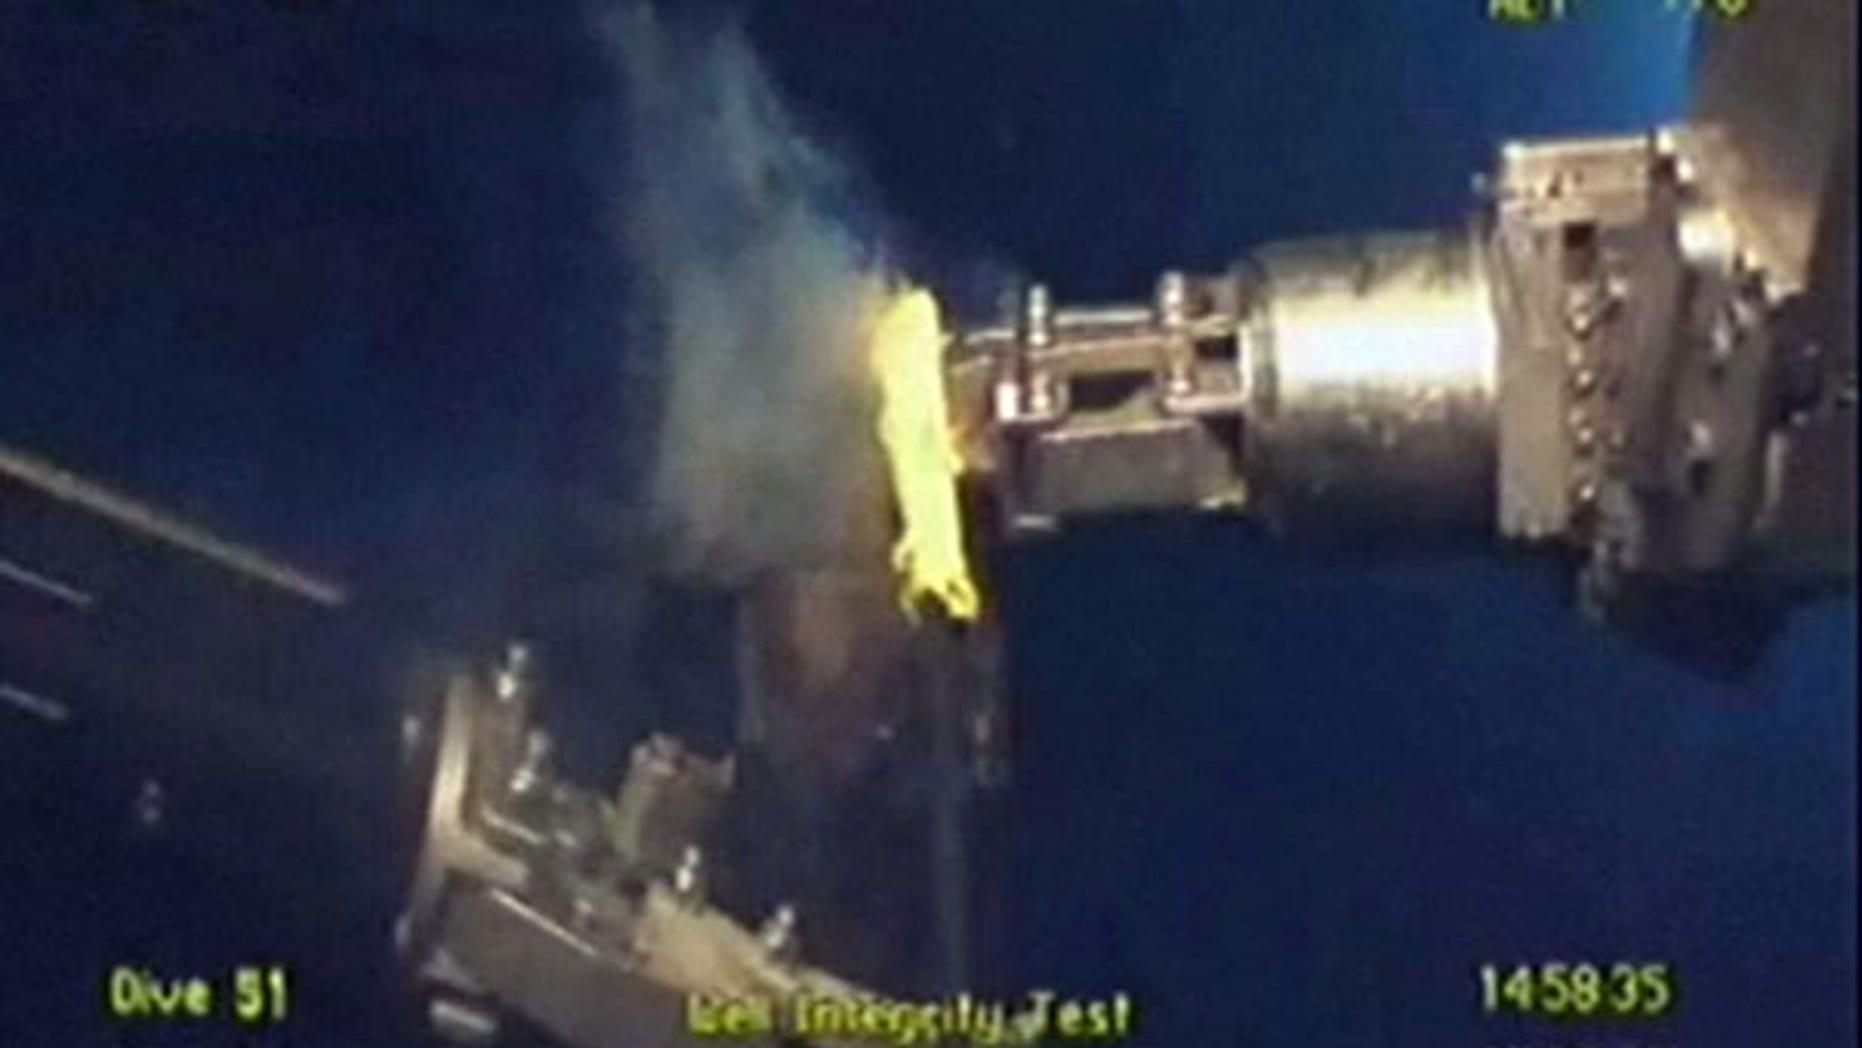 July 15: BP's underwater cameras show that oil has stopped flowing from its broken well in the Gulf of Mexico for the first time since the spill began in April.